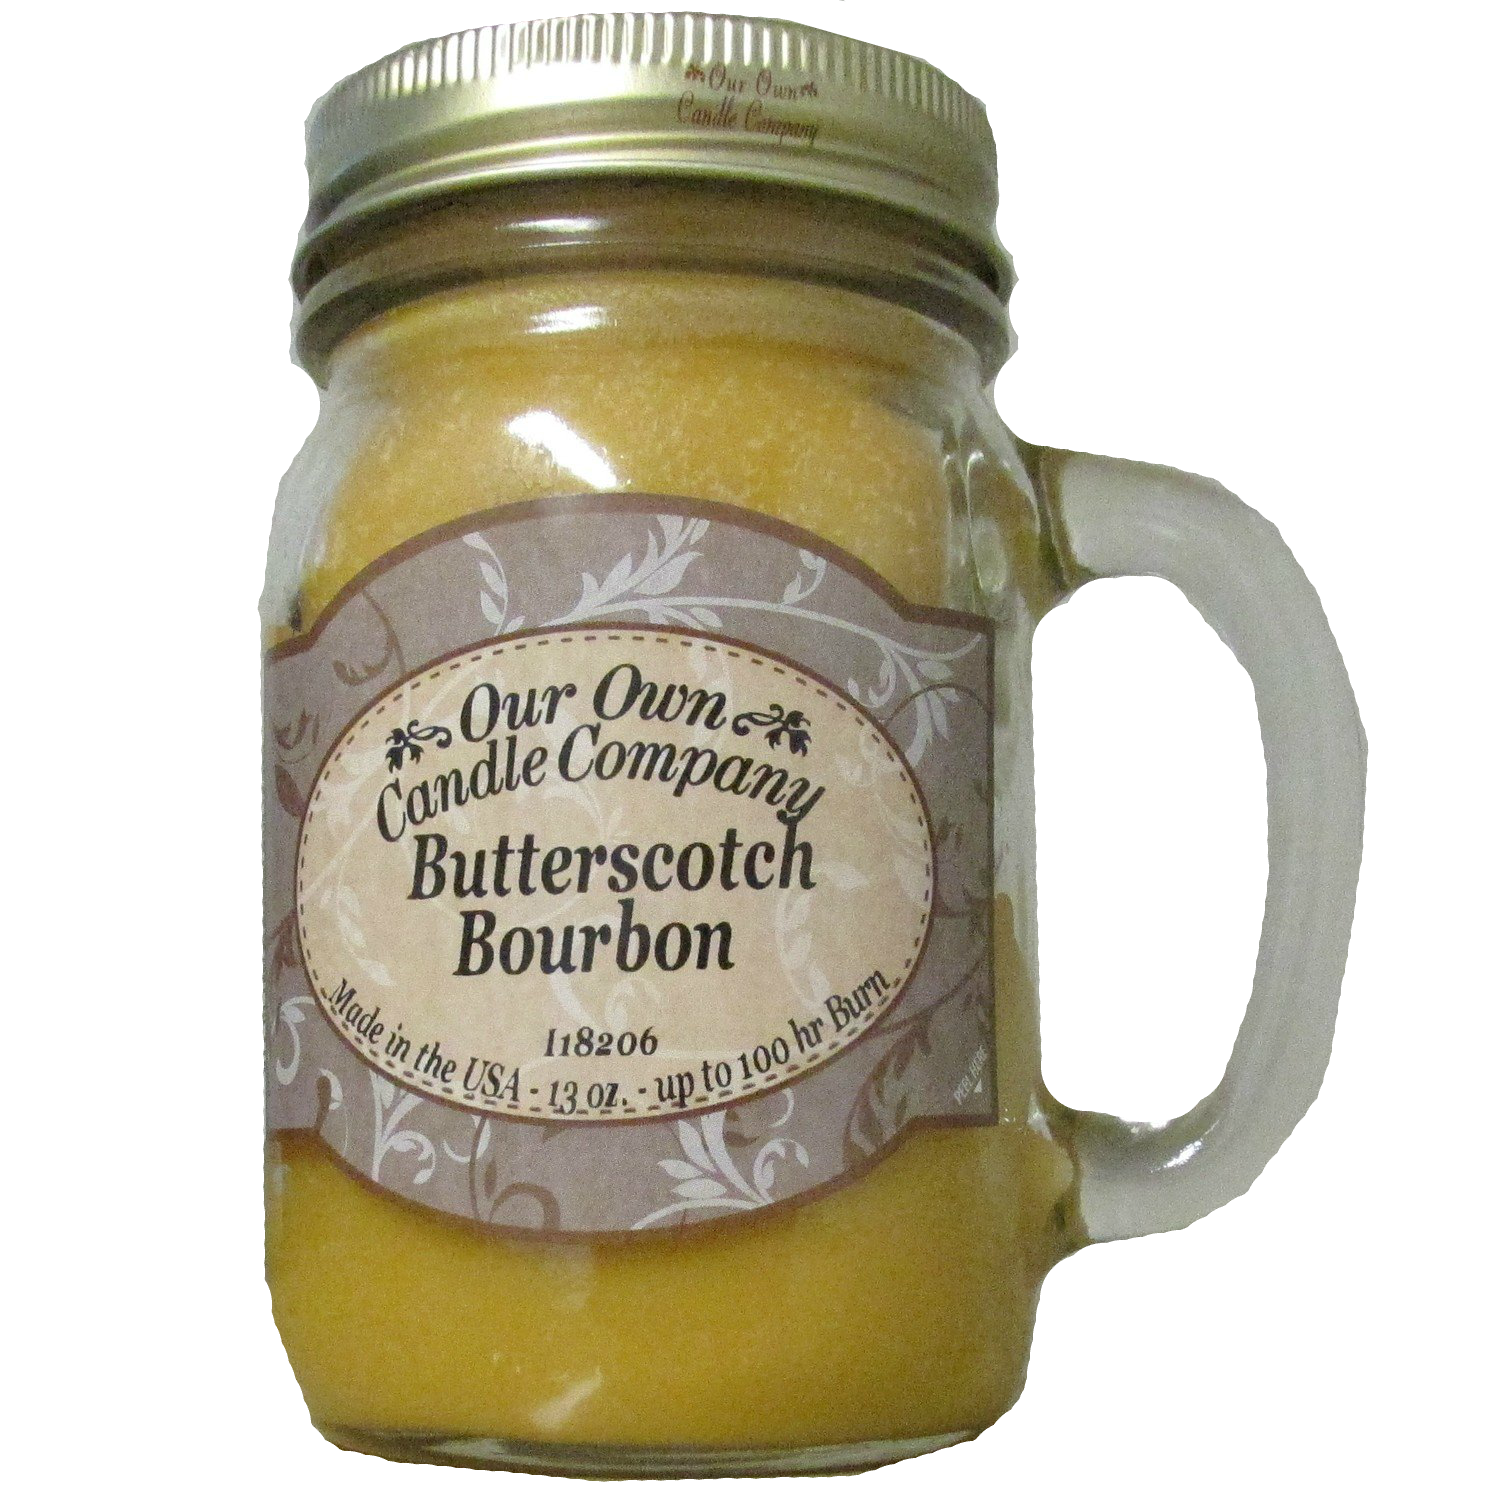 BUTTERSCOTCH BOURBON LARGE MASON CANDLE 13 OZ UPC# 810896002367